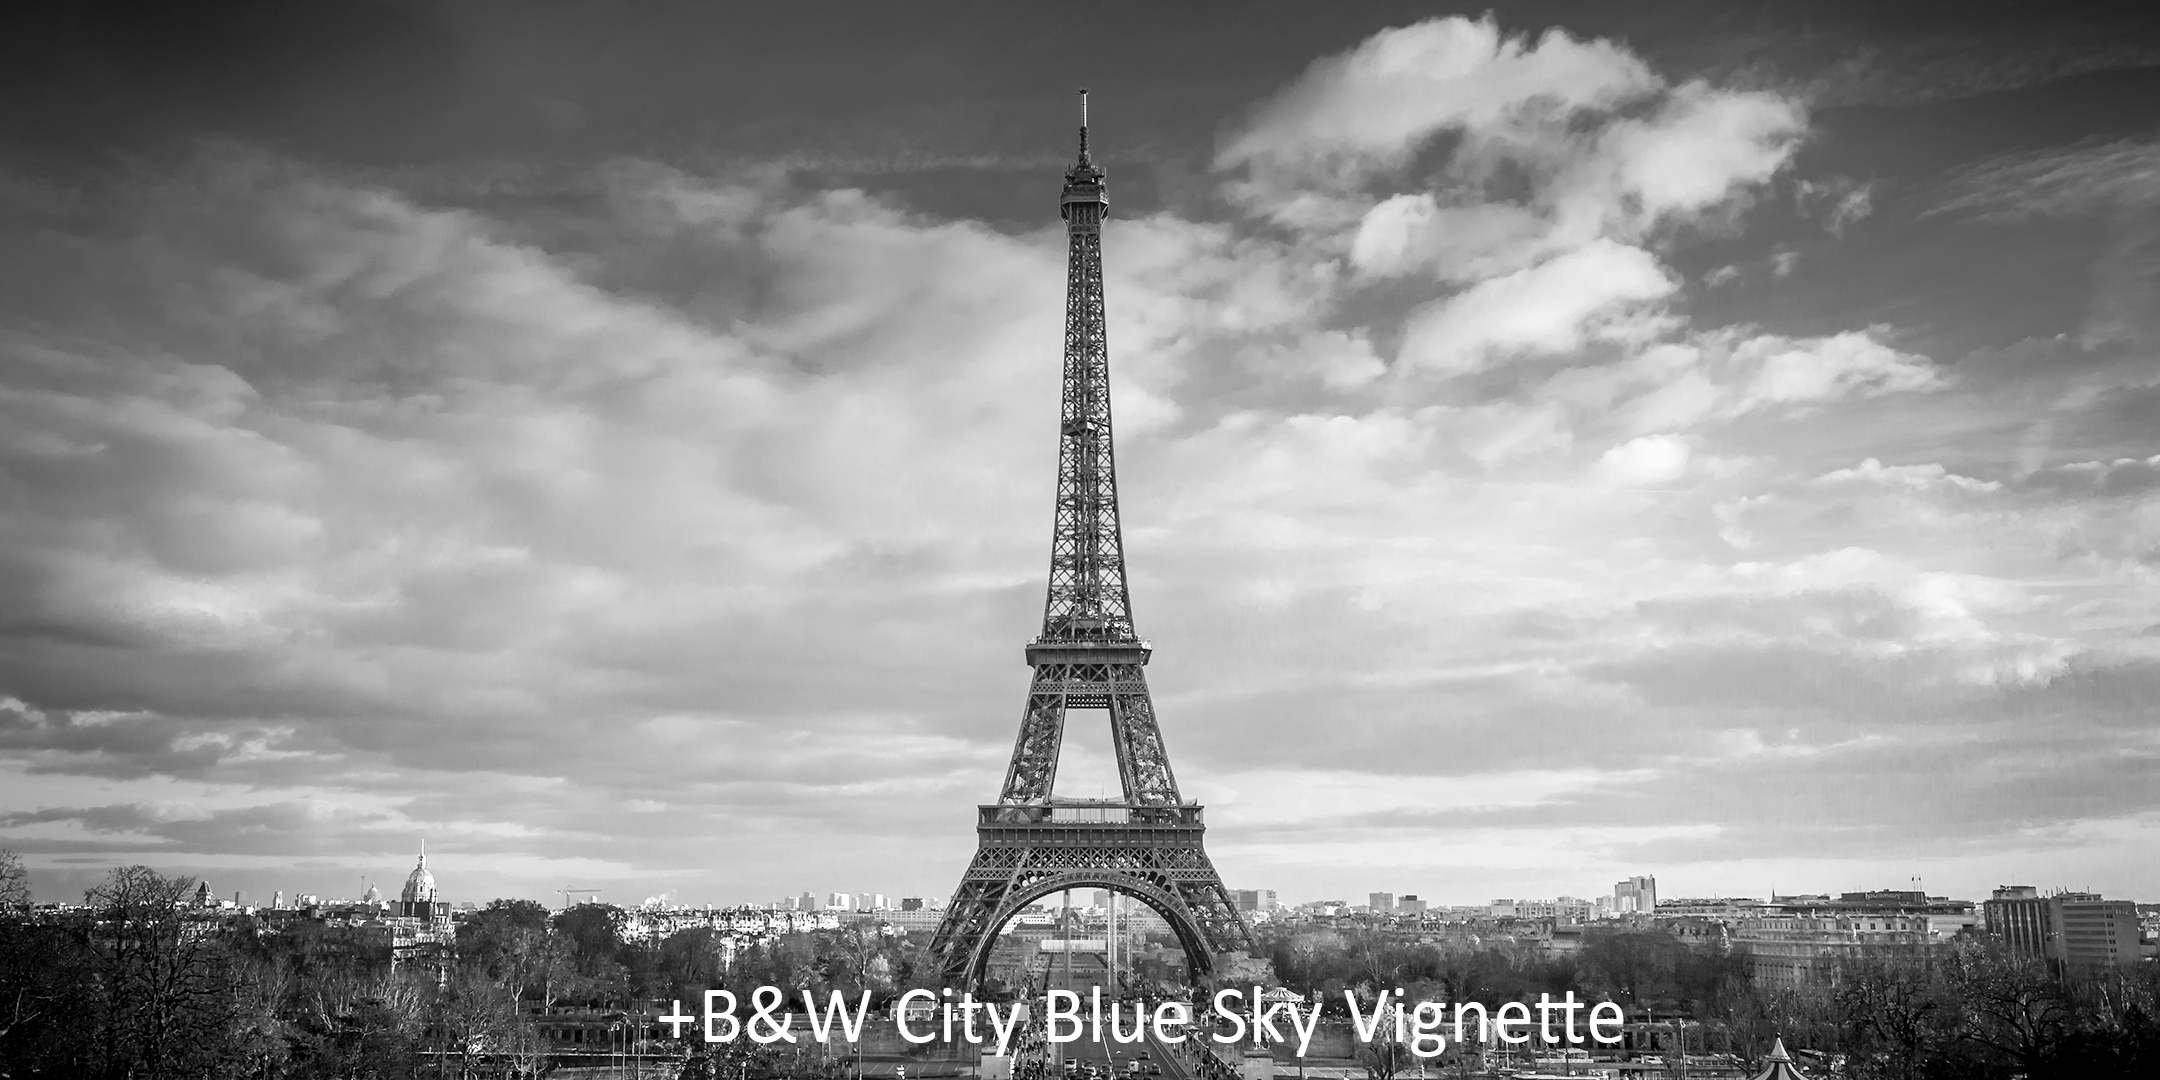 + B&W City Blue Sky Vingette.jpg